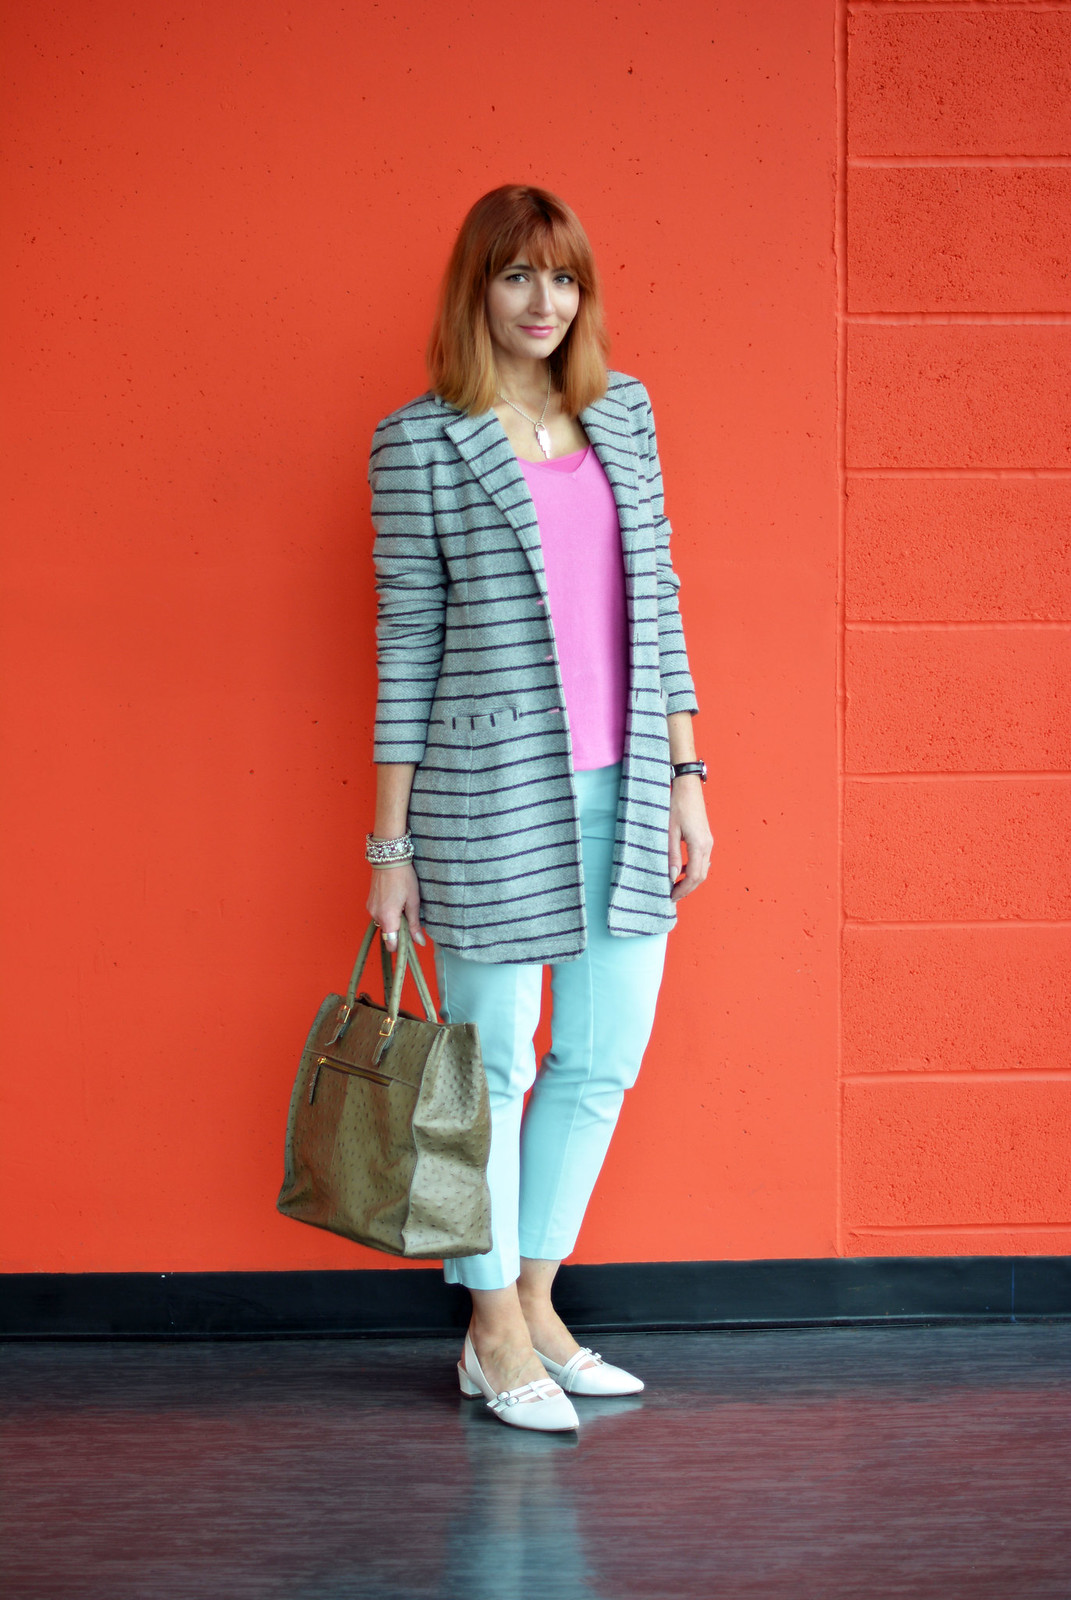 Spring Style: Pink, mint, white and grey stripes | Not Dressed As Lamb